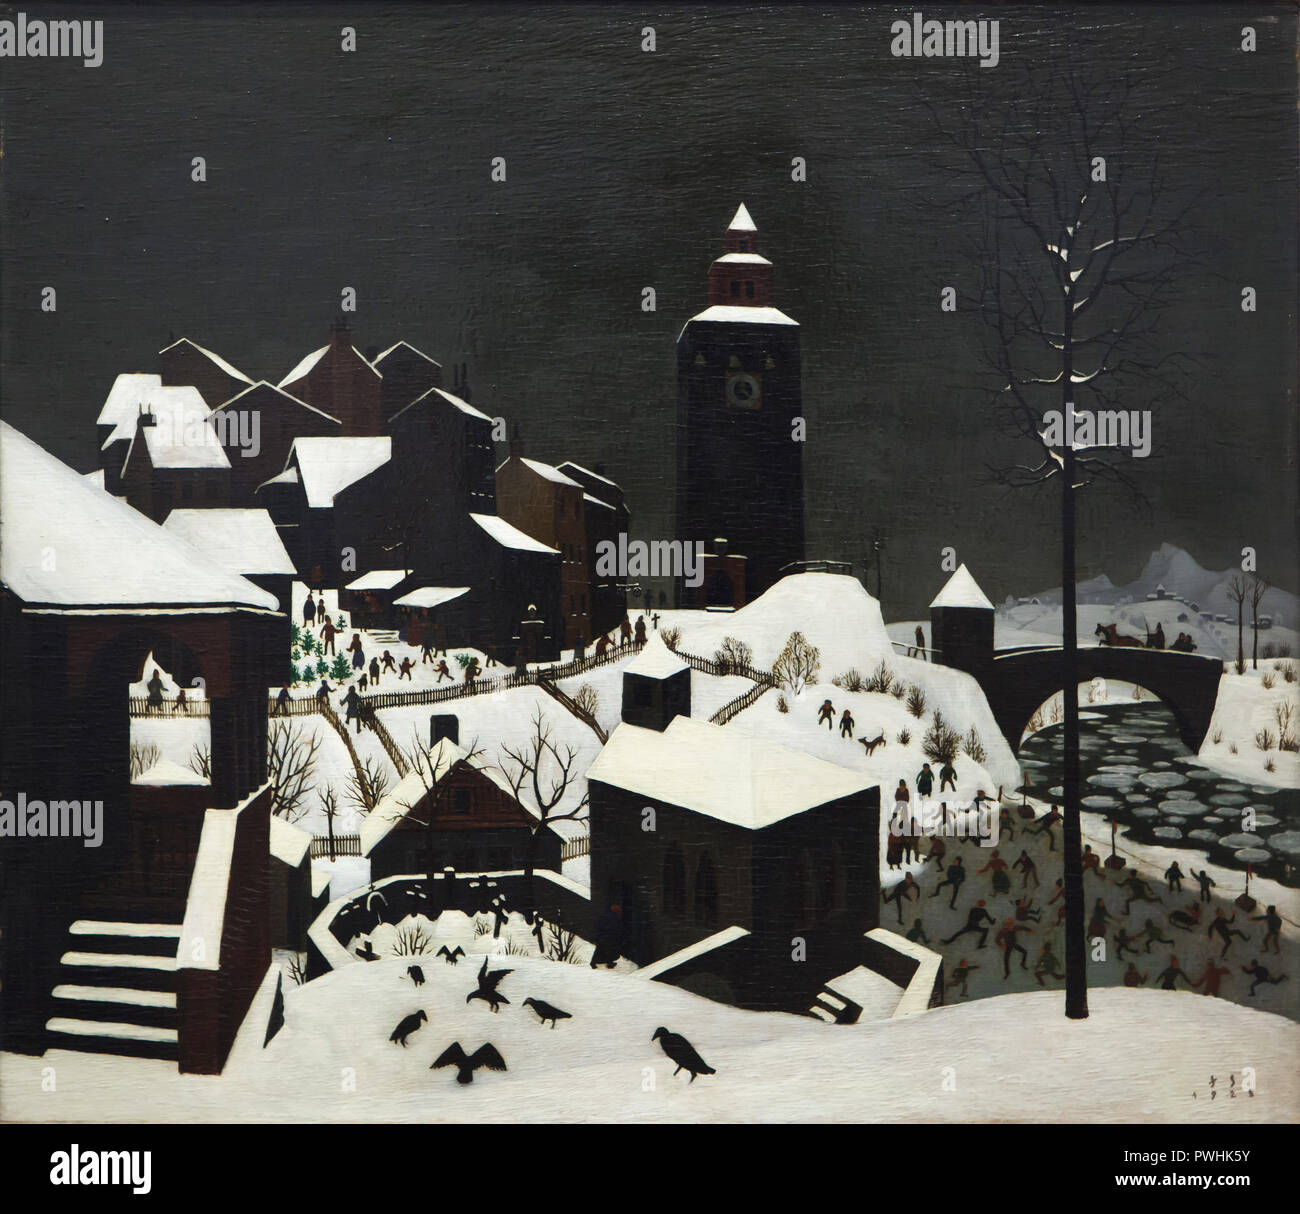 Painting 'Winter Landscape' by Austrian painter Franz Sedlacek (1925) on display in the Albertina Museum in Vienna, Austria. - Stock Image